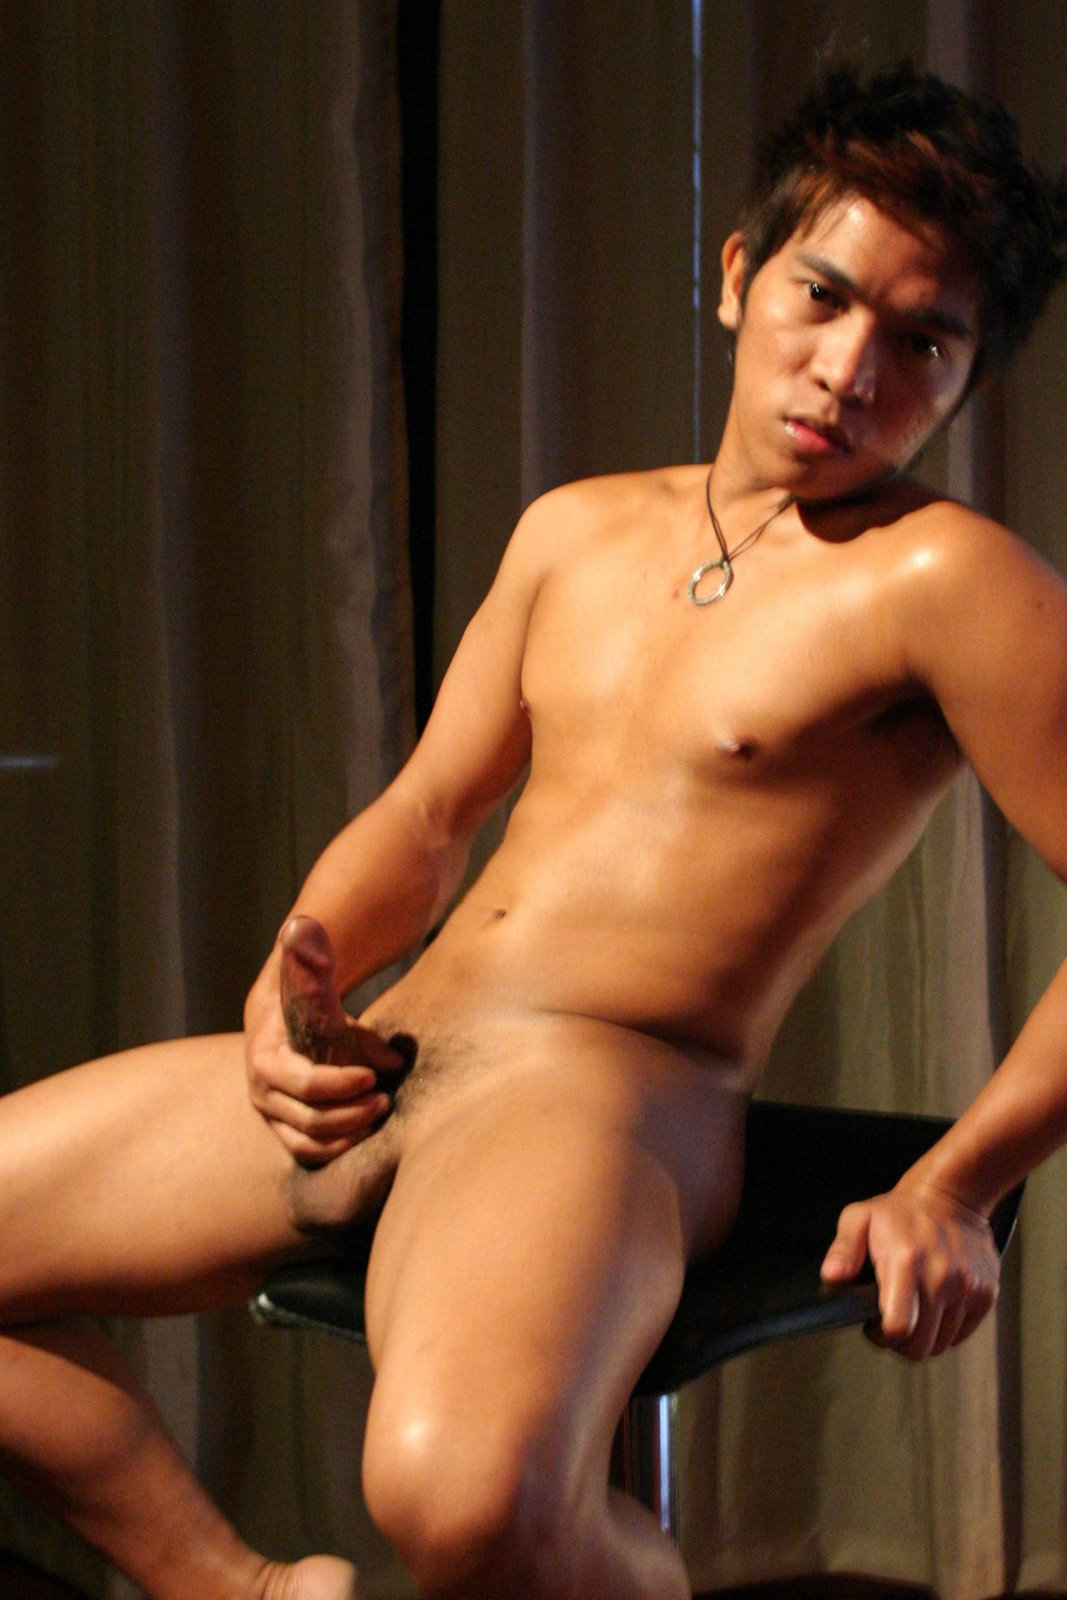 Sexiest filipino women naked that